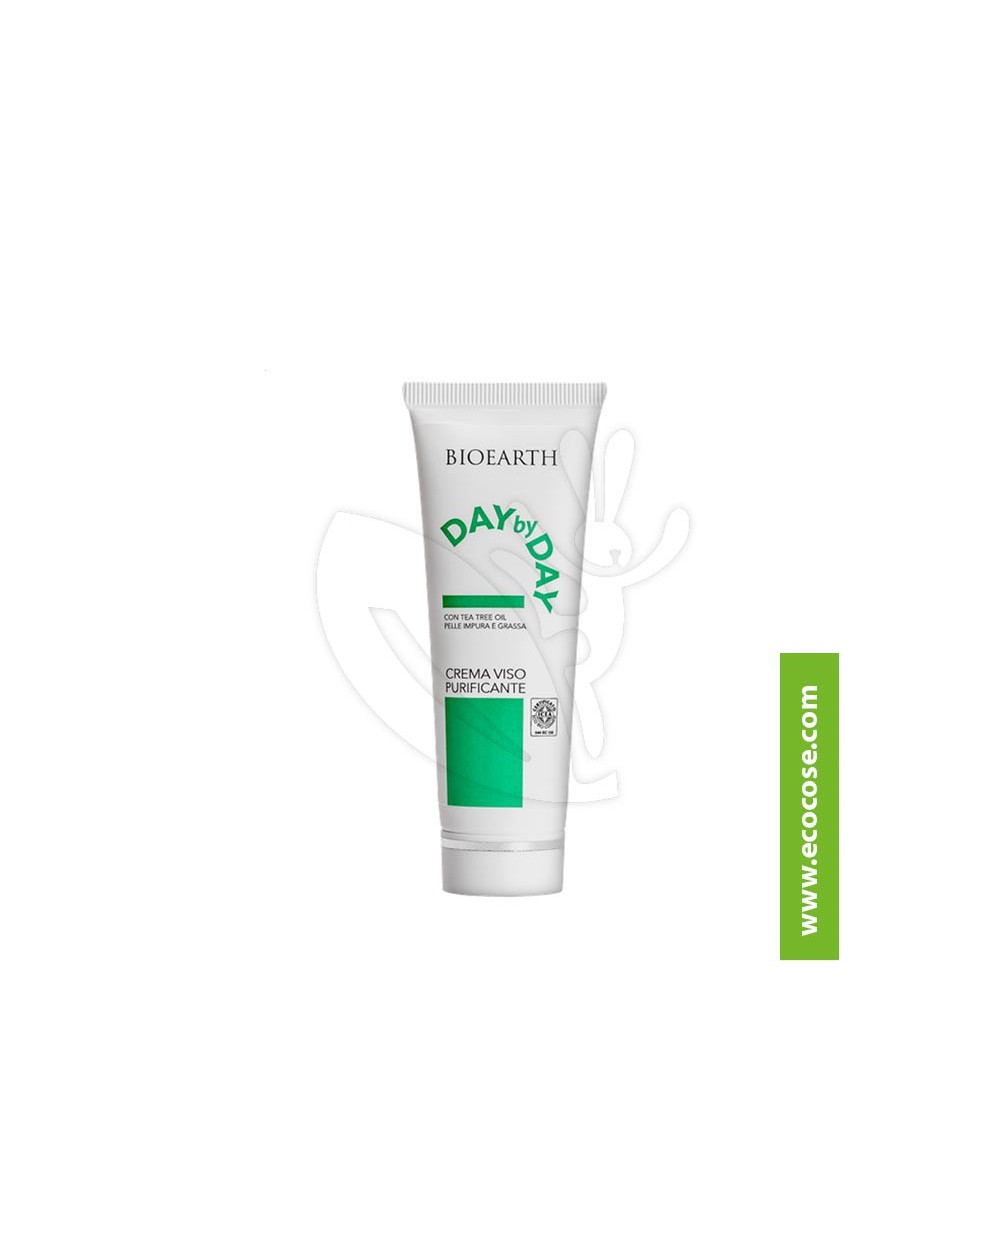 Bioearth Day by Day - Crema viso purificante